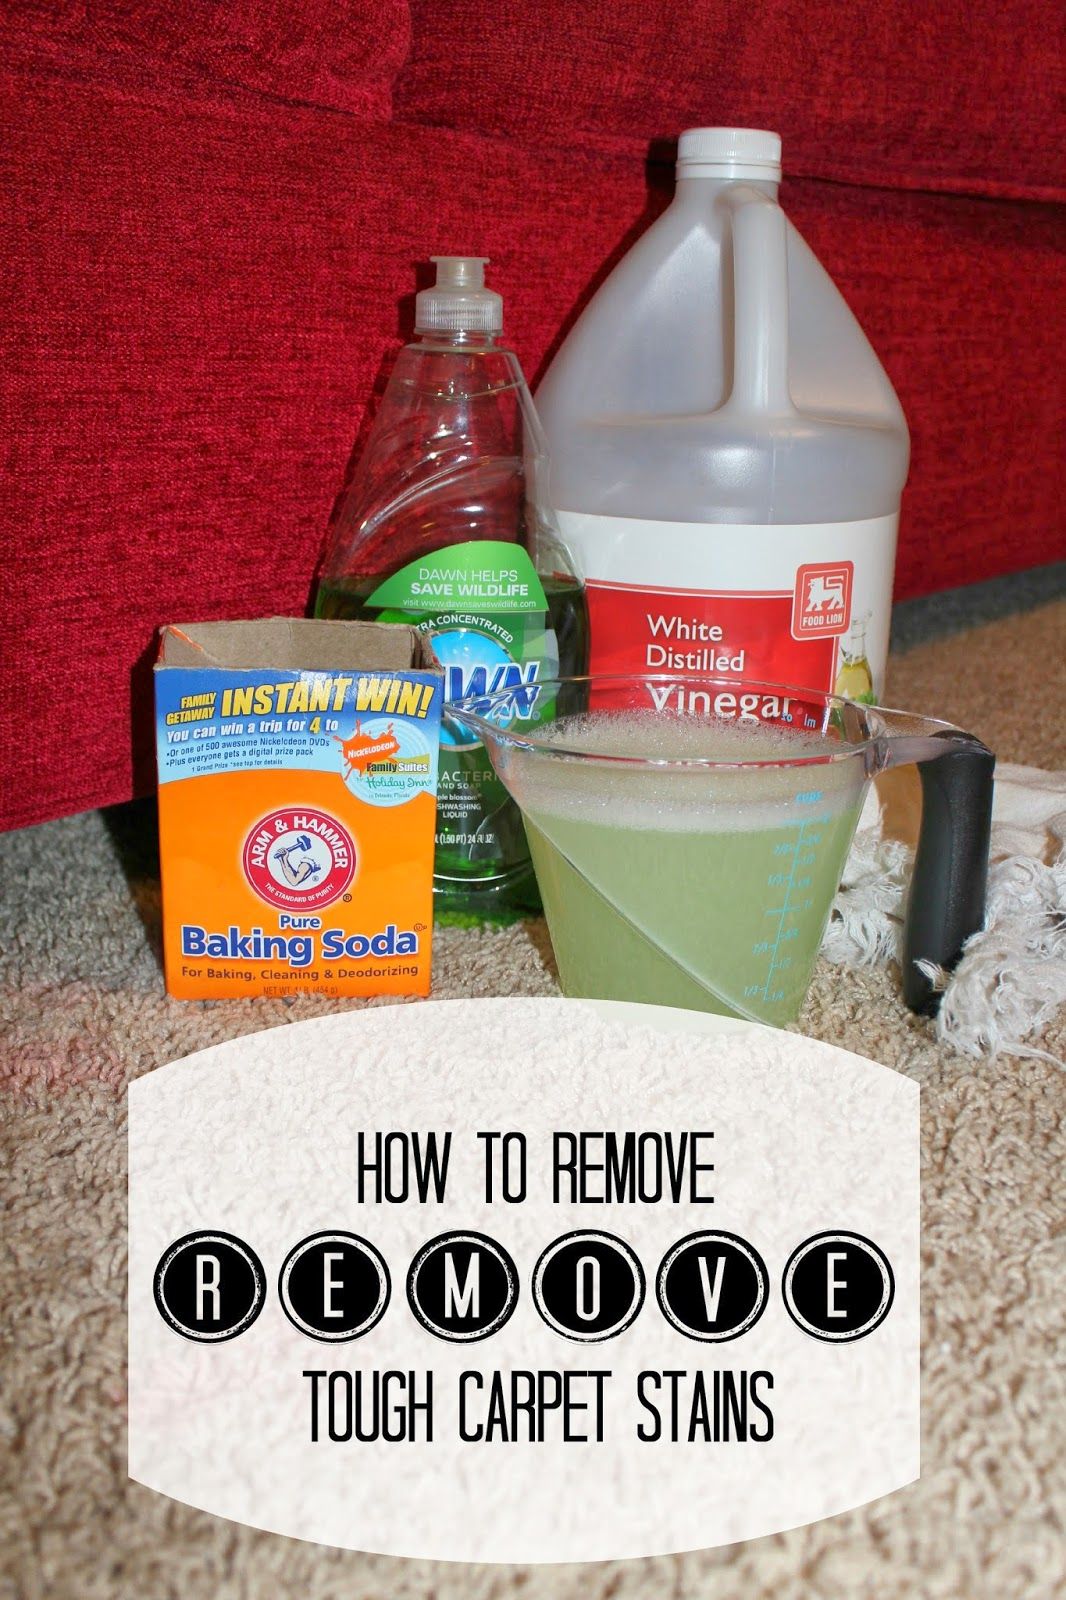 Harris sisters girltalk how to remove tough carpet stains - Tips cleaning carpets remove difficult stains ...